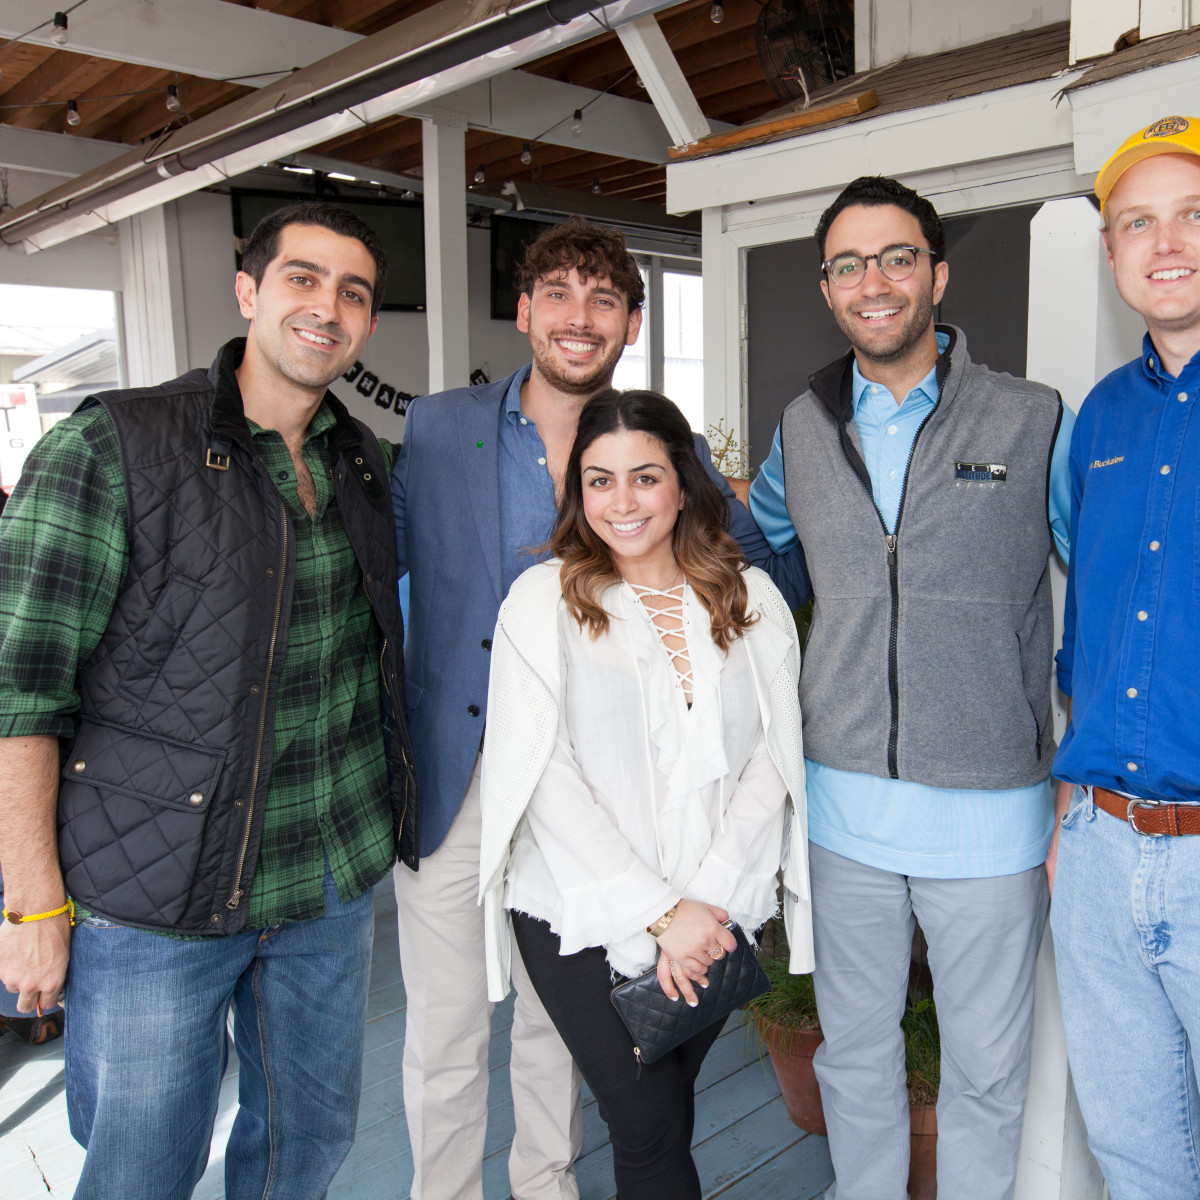 durham House brunch, March 2016, Andyshea Saberioon, Ricky Johnston, Rania Amin, Arash Roozbeh, Austin Buckalew